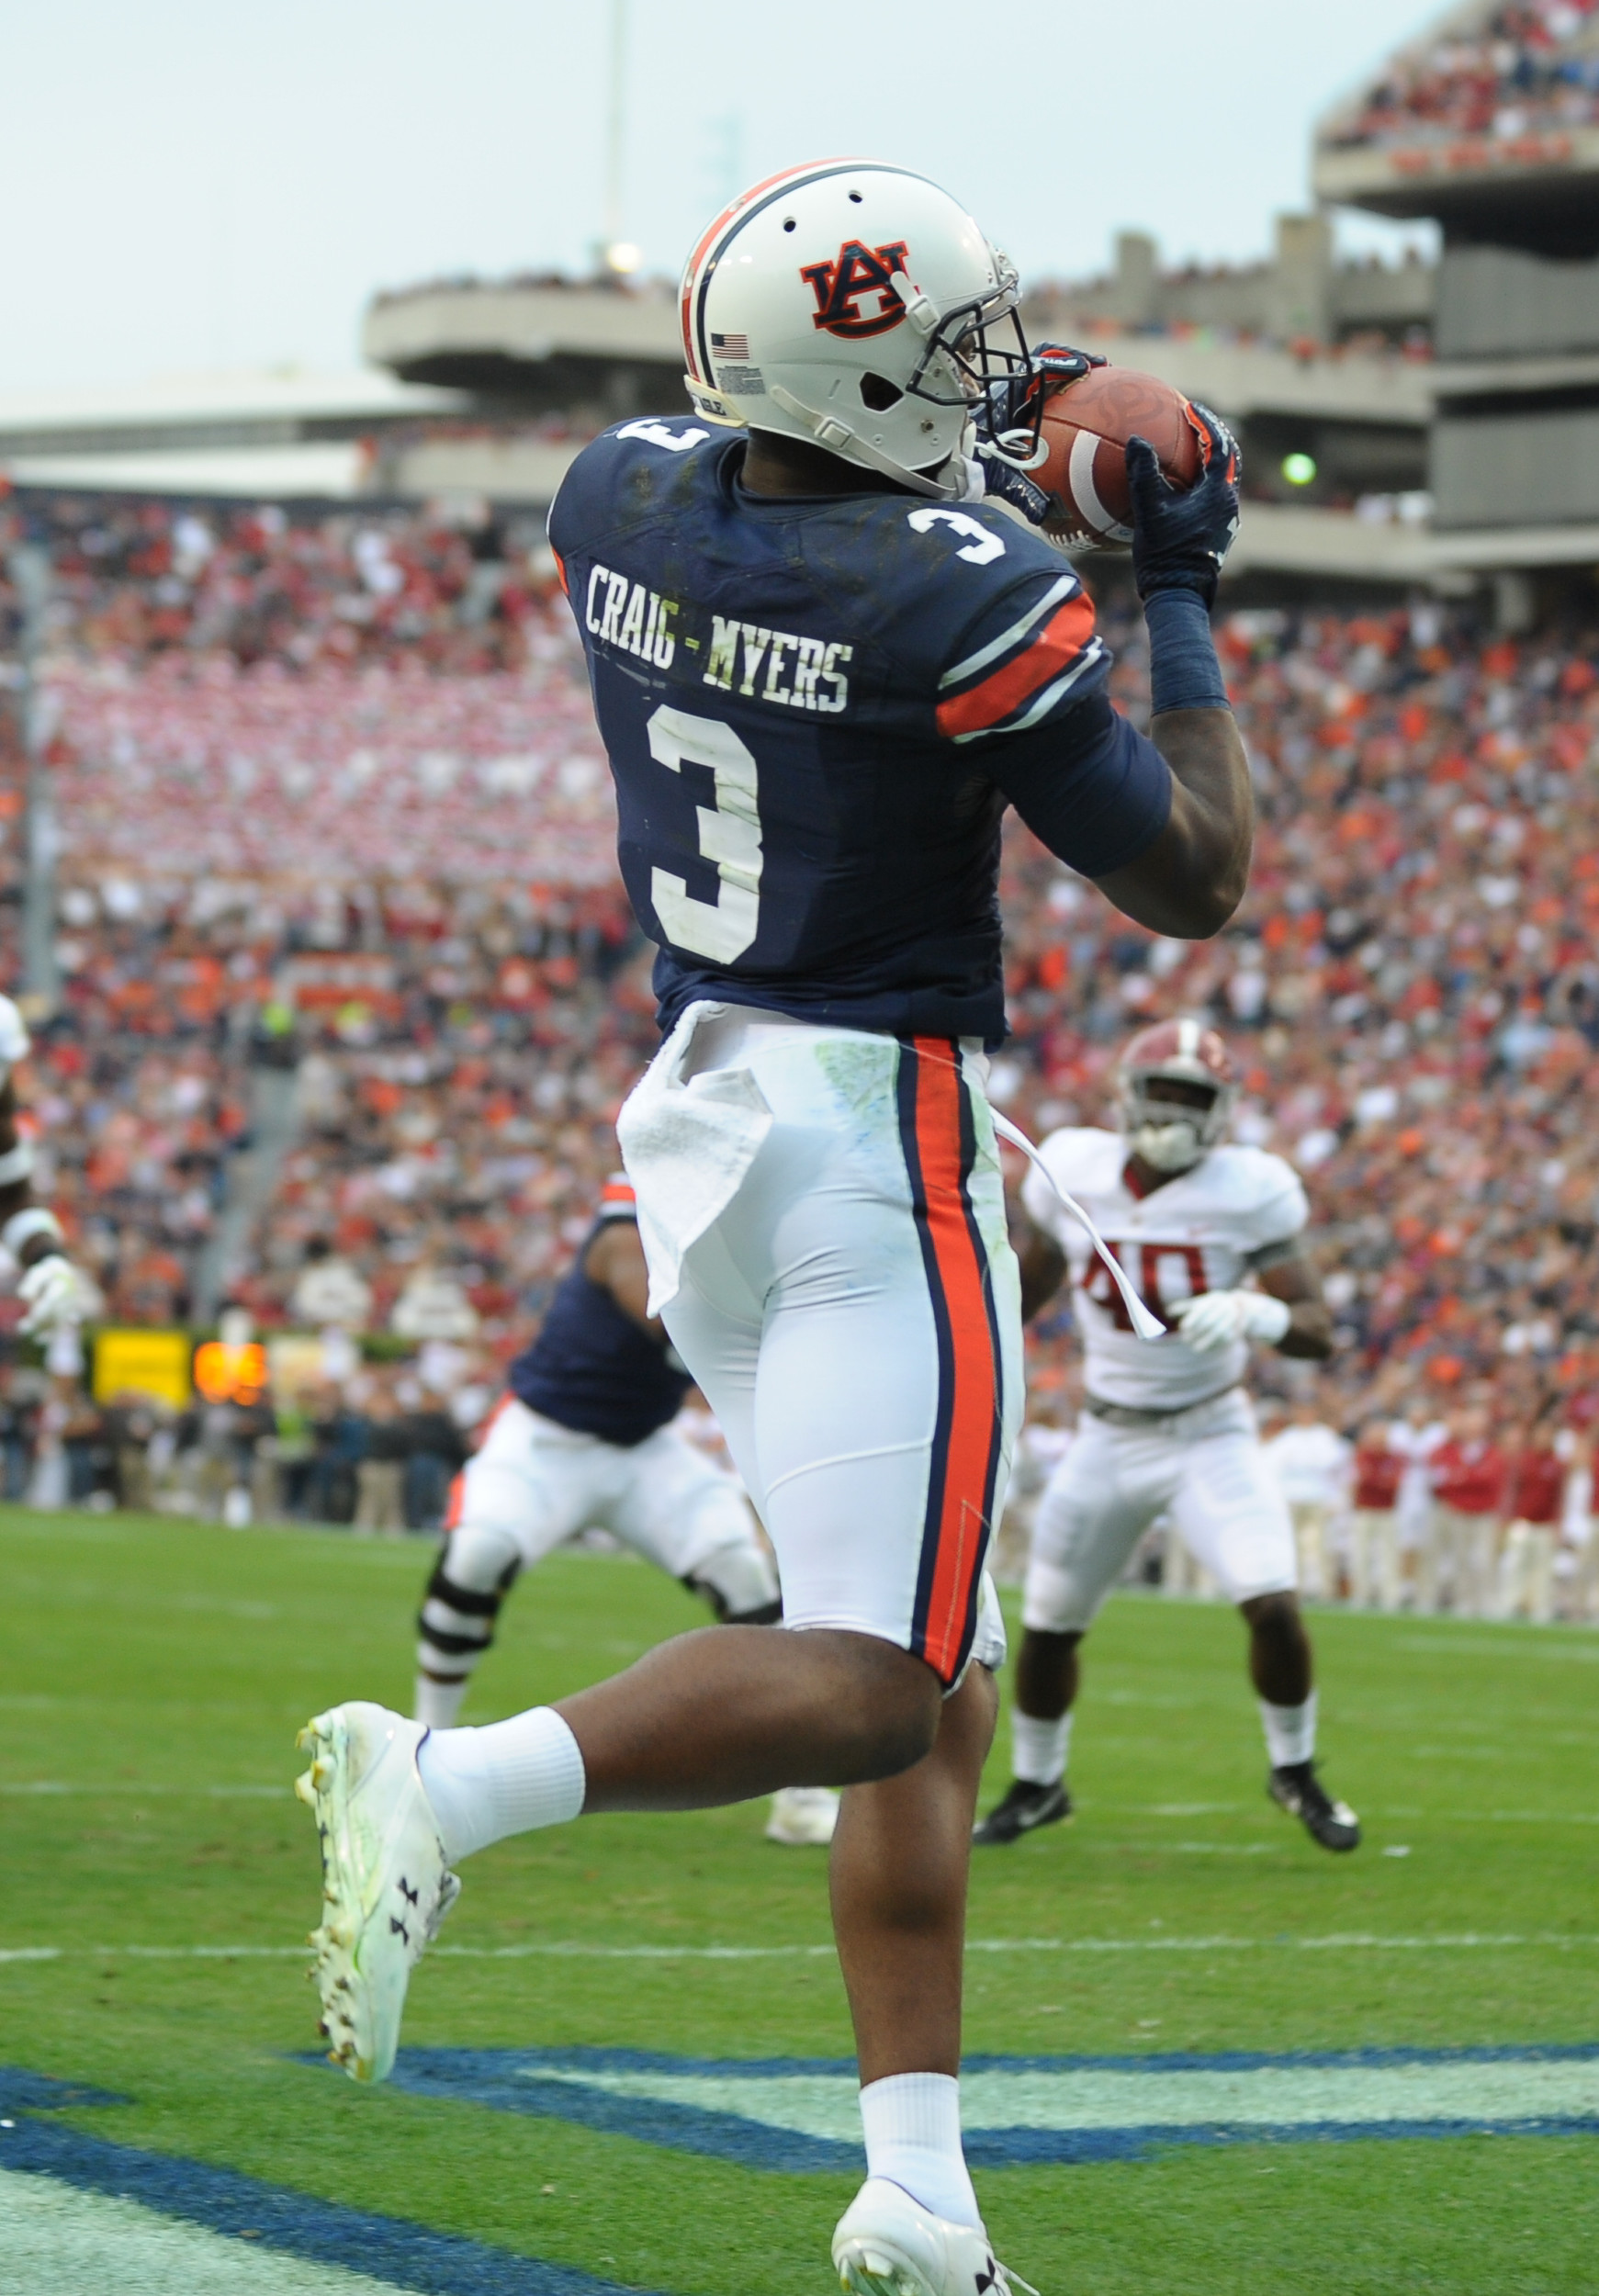 Auburn Tigers wide receiver Nate Craig-Myers (3)catches a touchdown pass from running back Kerryon Johnson during the first half of Saturday's game, at Jordan-Hare Stadium.